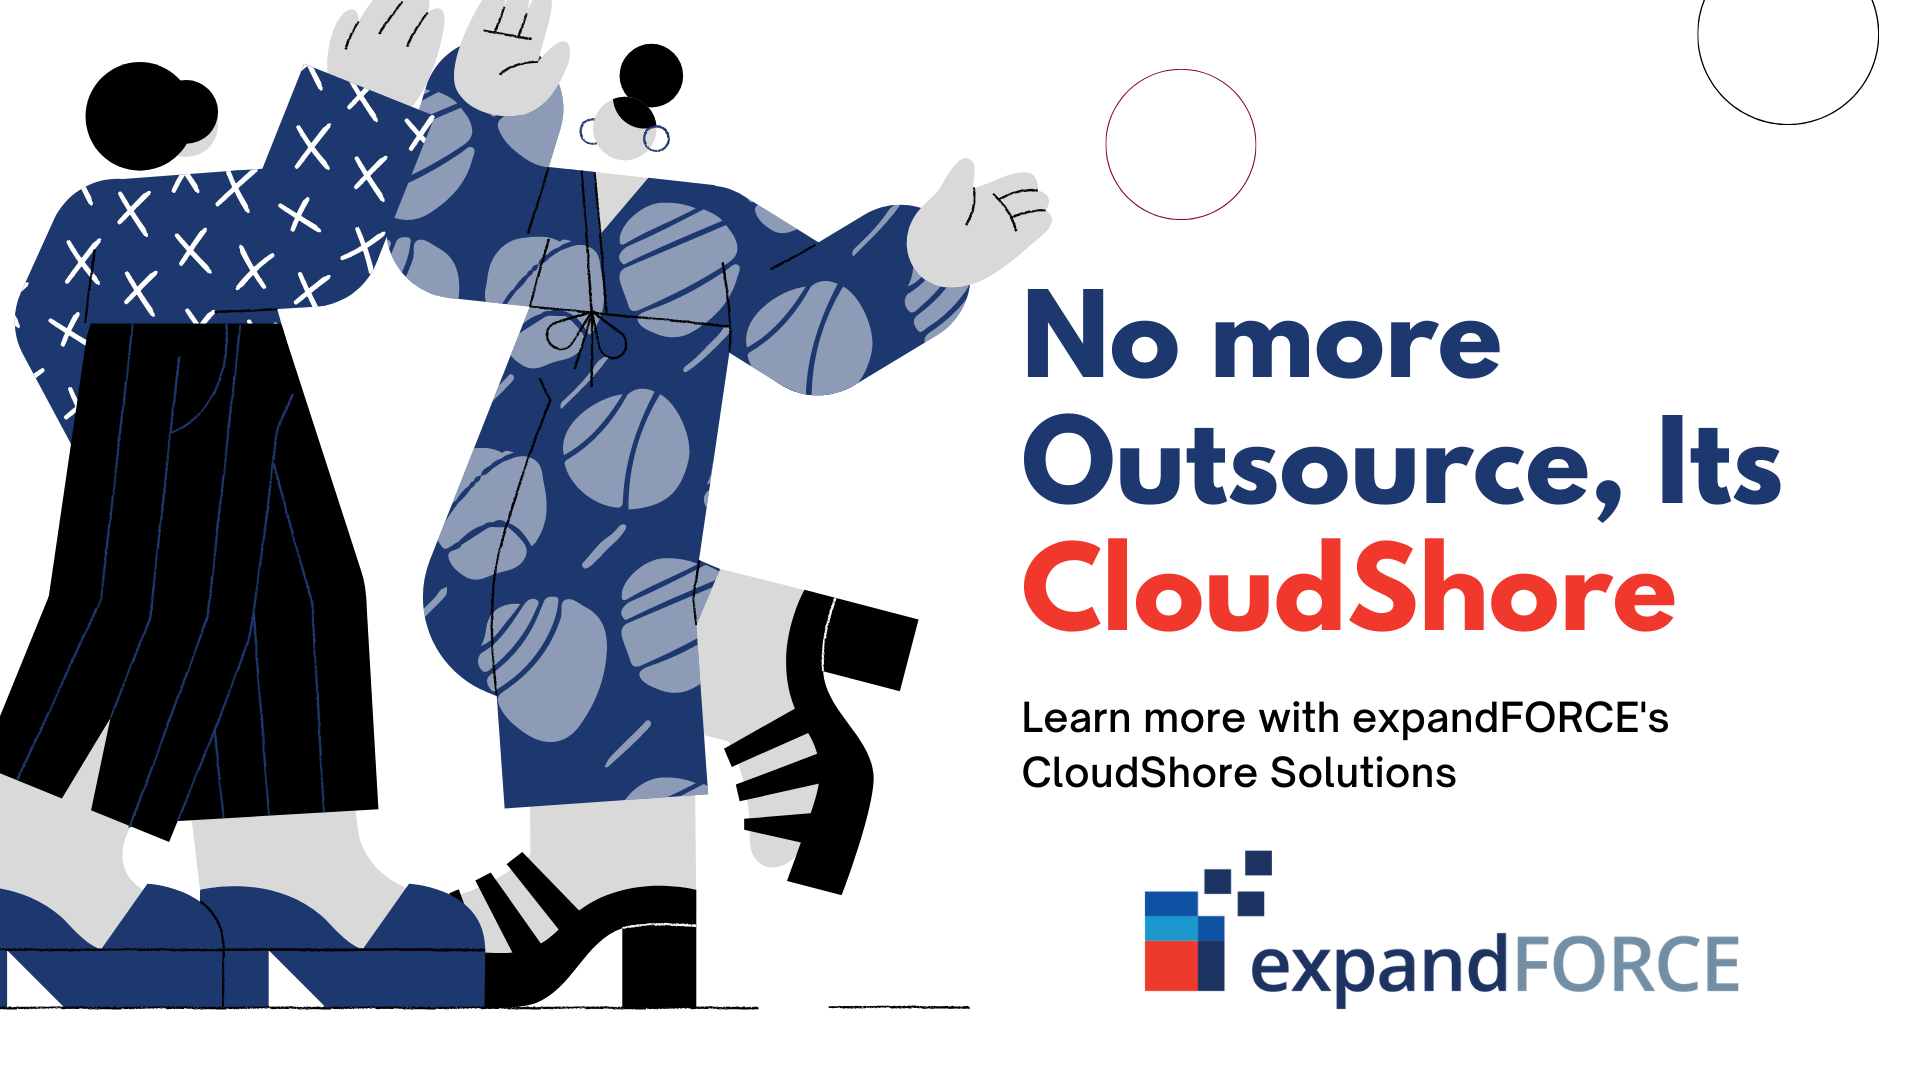 Transforming from traditional Outsourcing to expandFORCE's CloudShore